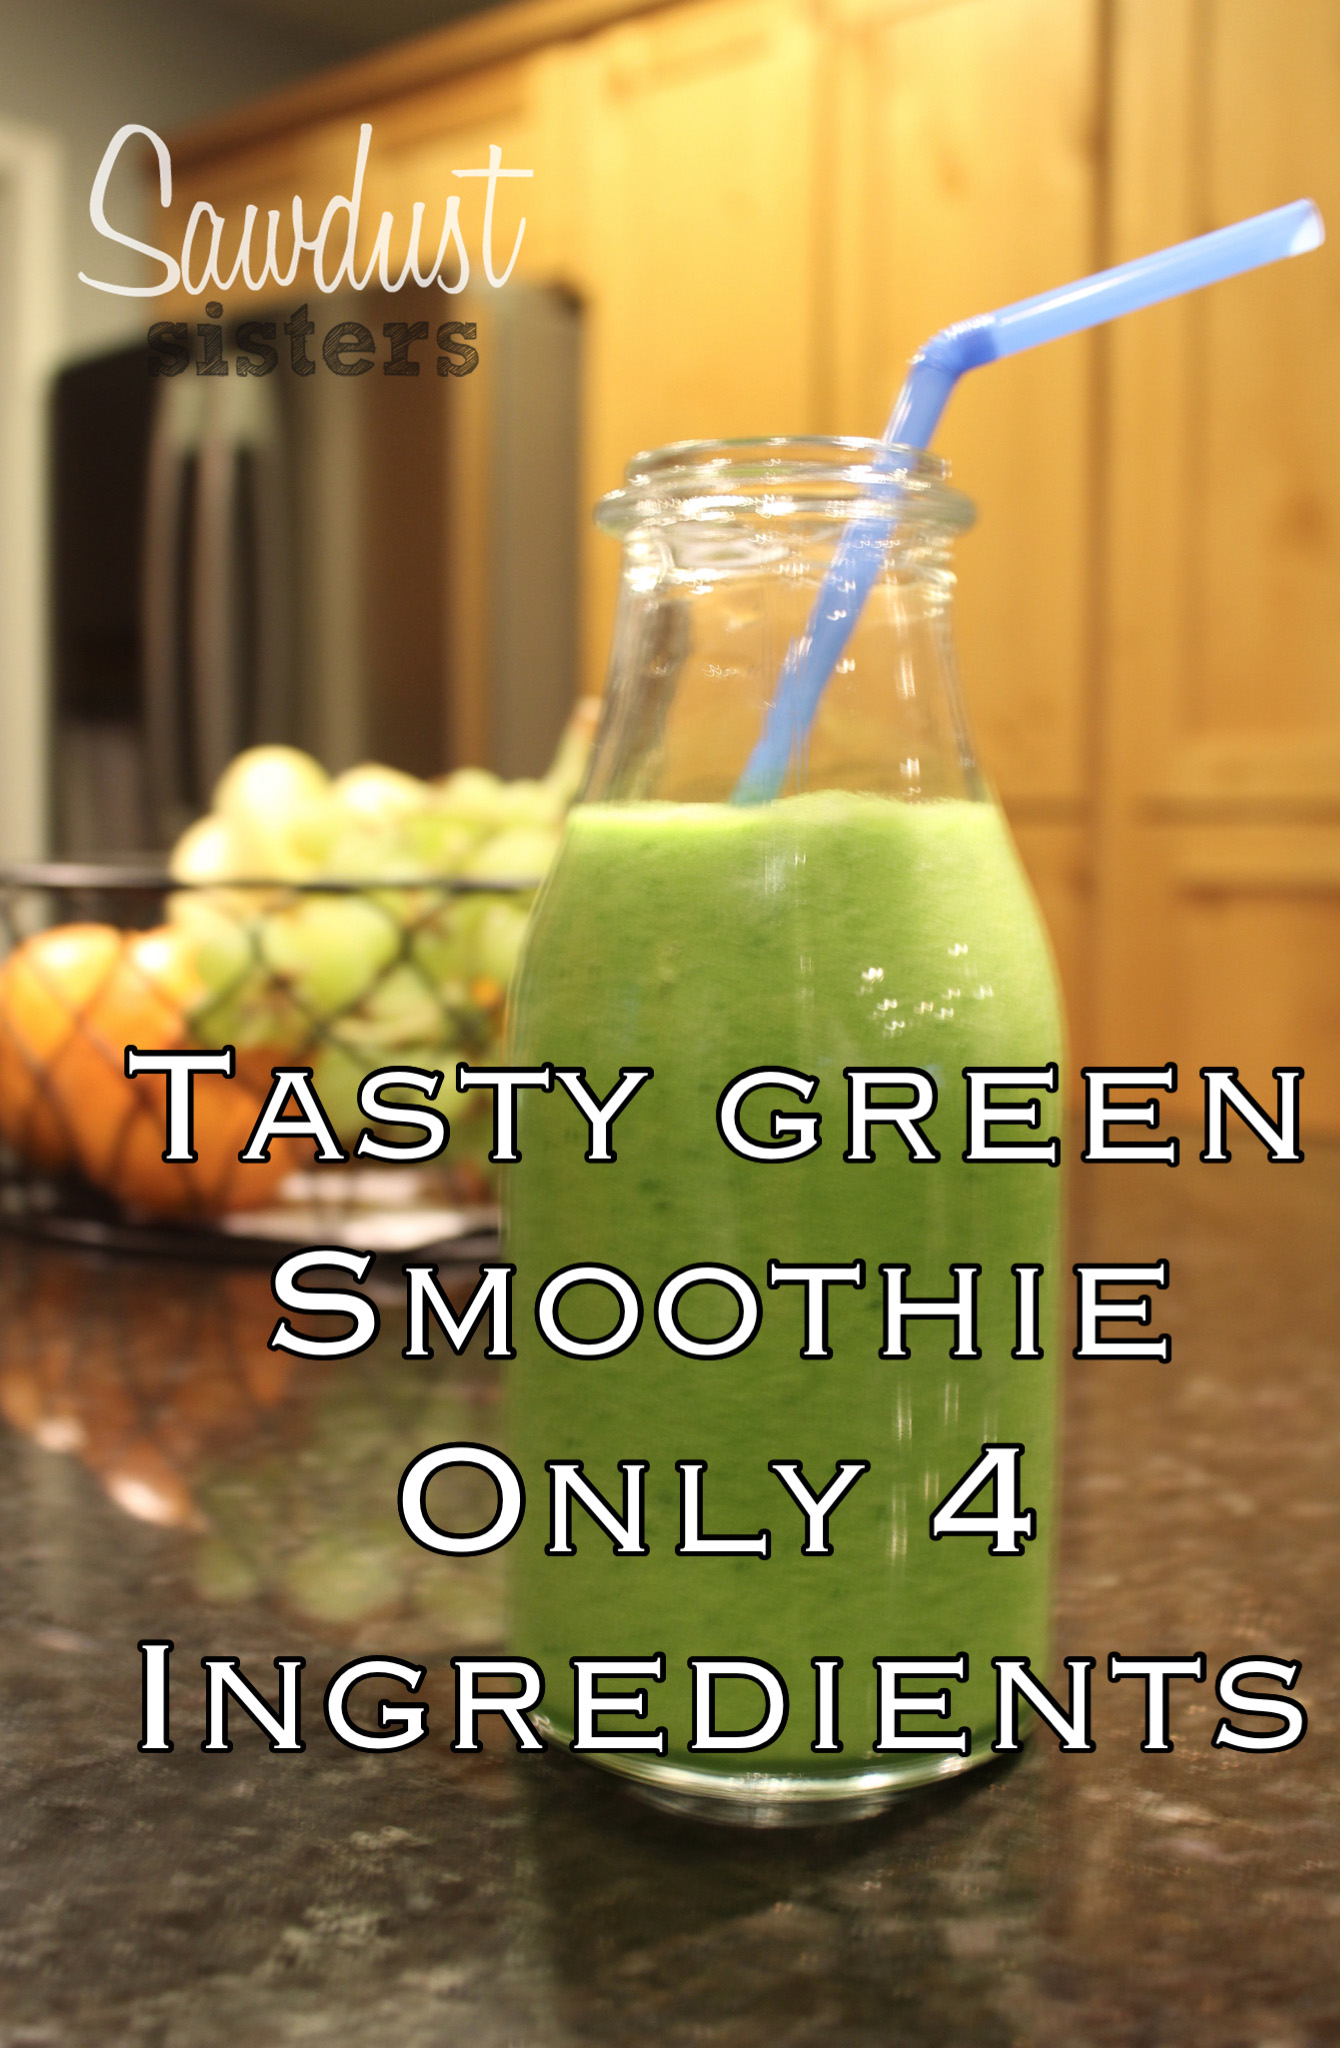 The best tasting green smoothie with only 4 ingredients!! sawdustsisters.com